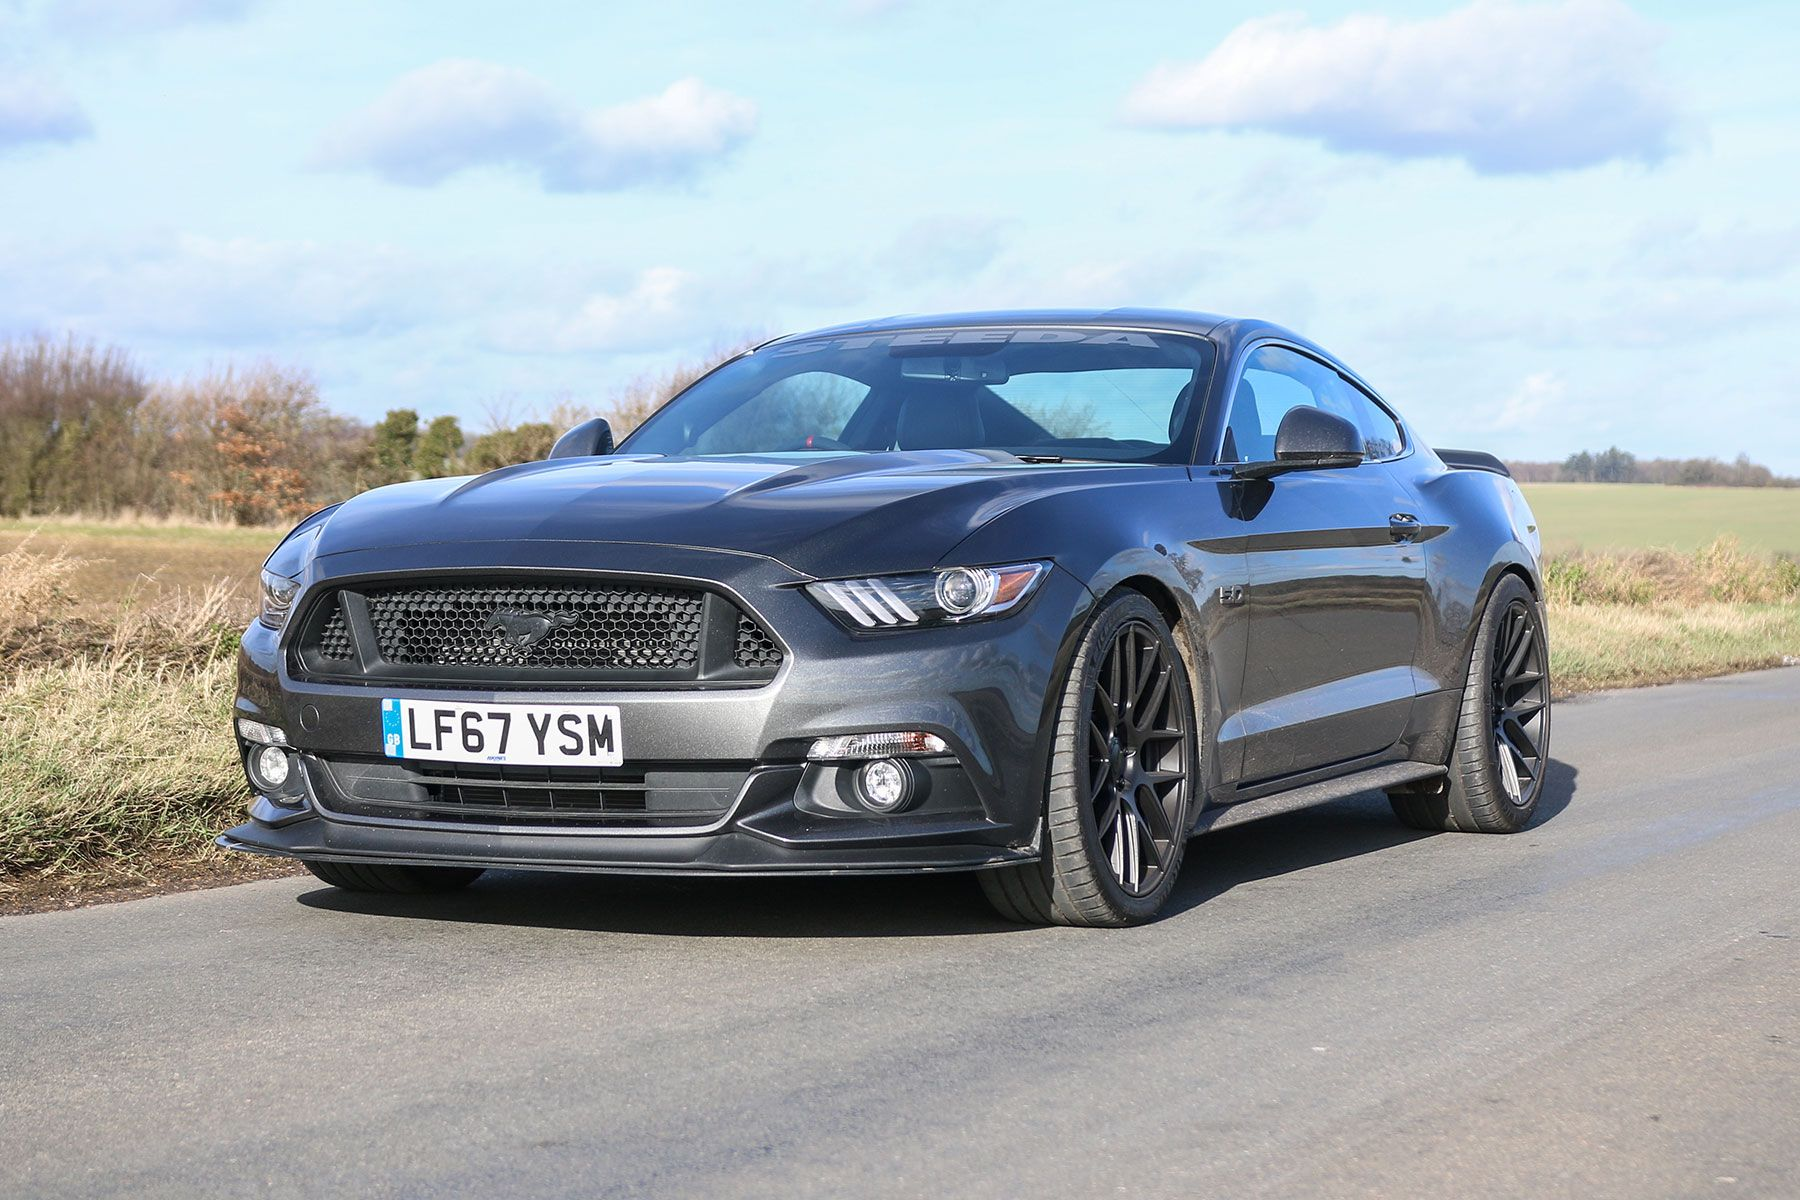 Ford Mustang Modifications Uk Di 2020 Indonesia